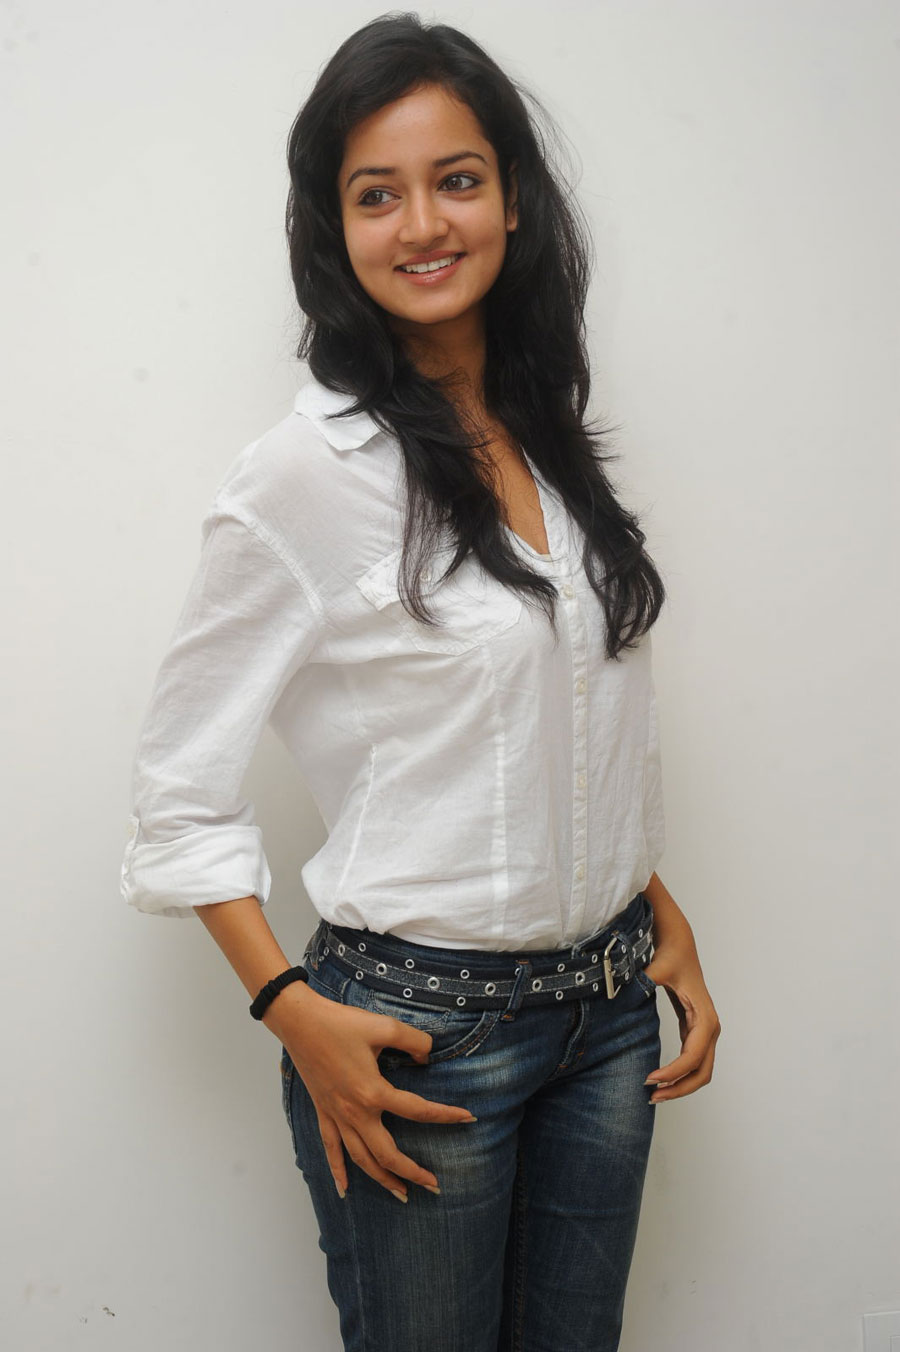 Shanvi Shoot in Adda Press Meet Photo Gallery Sanvi-25